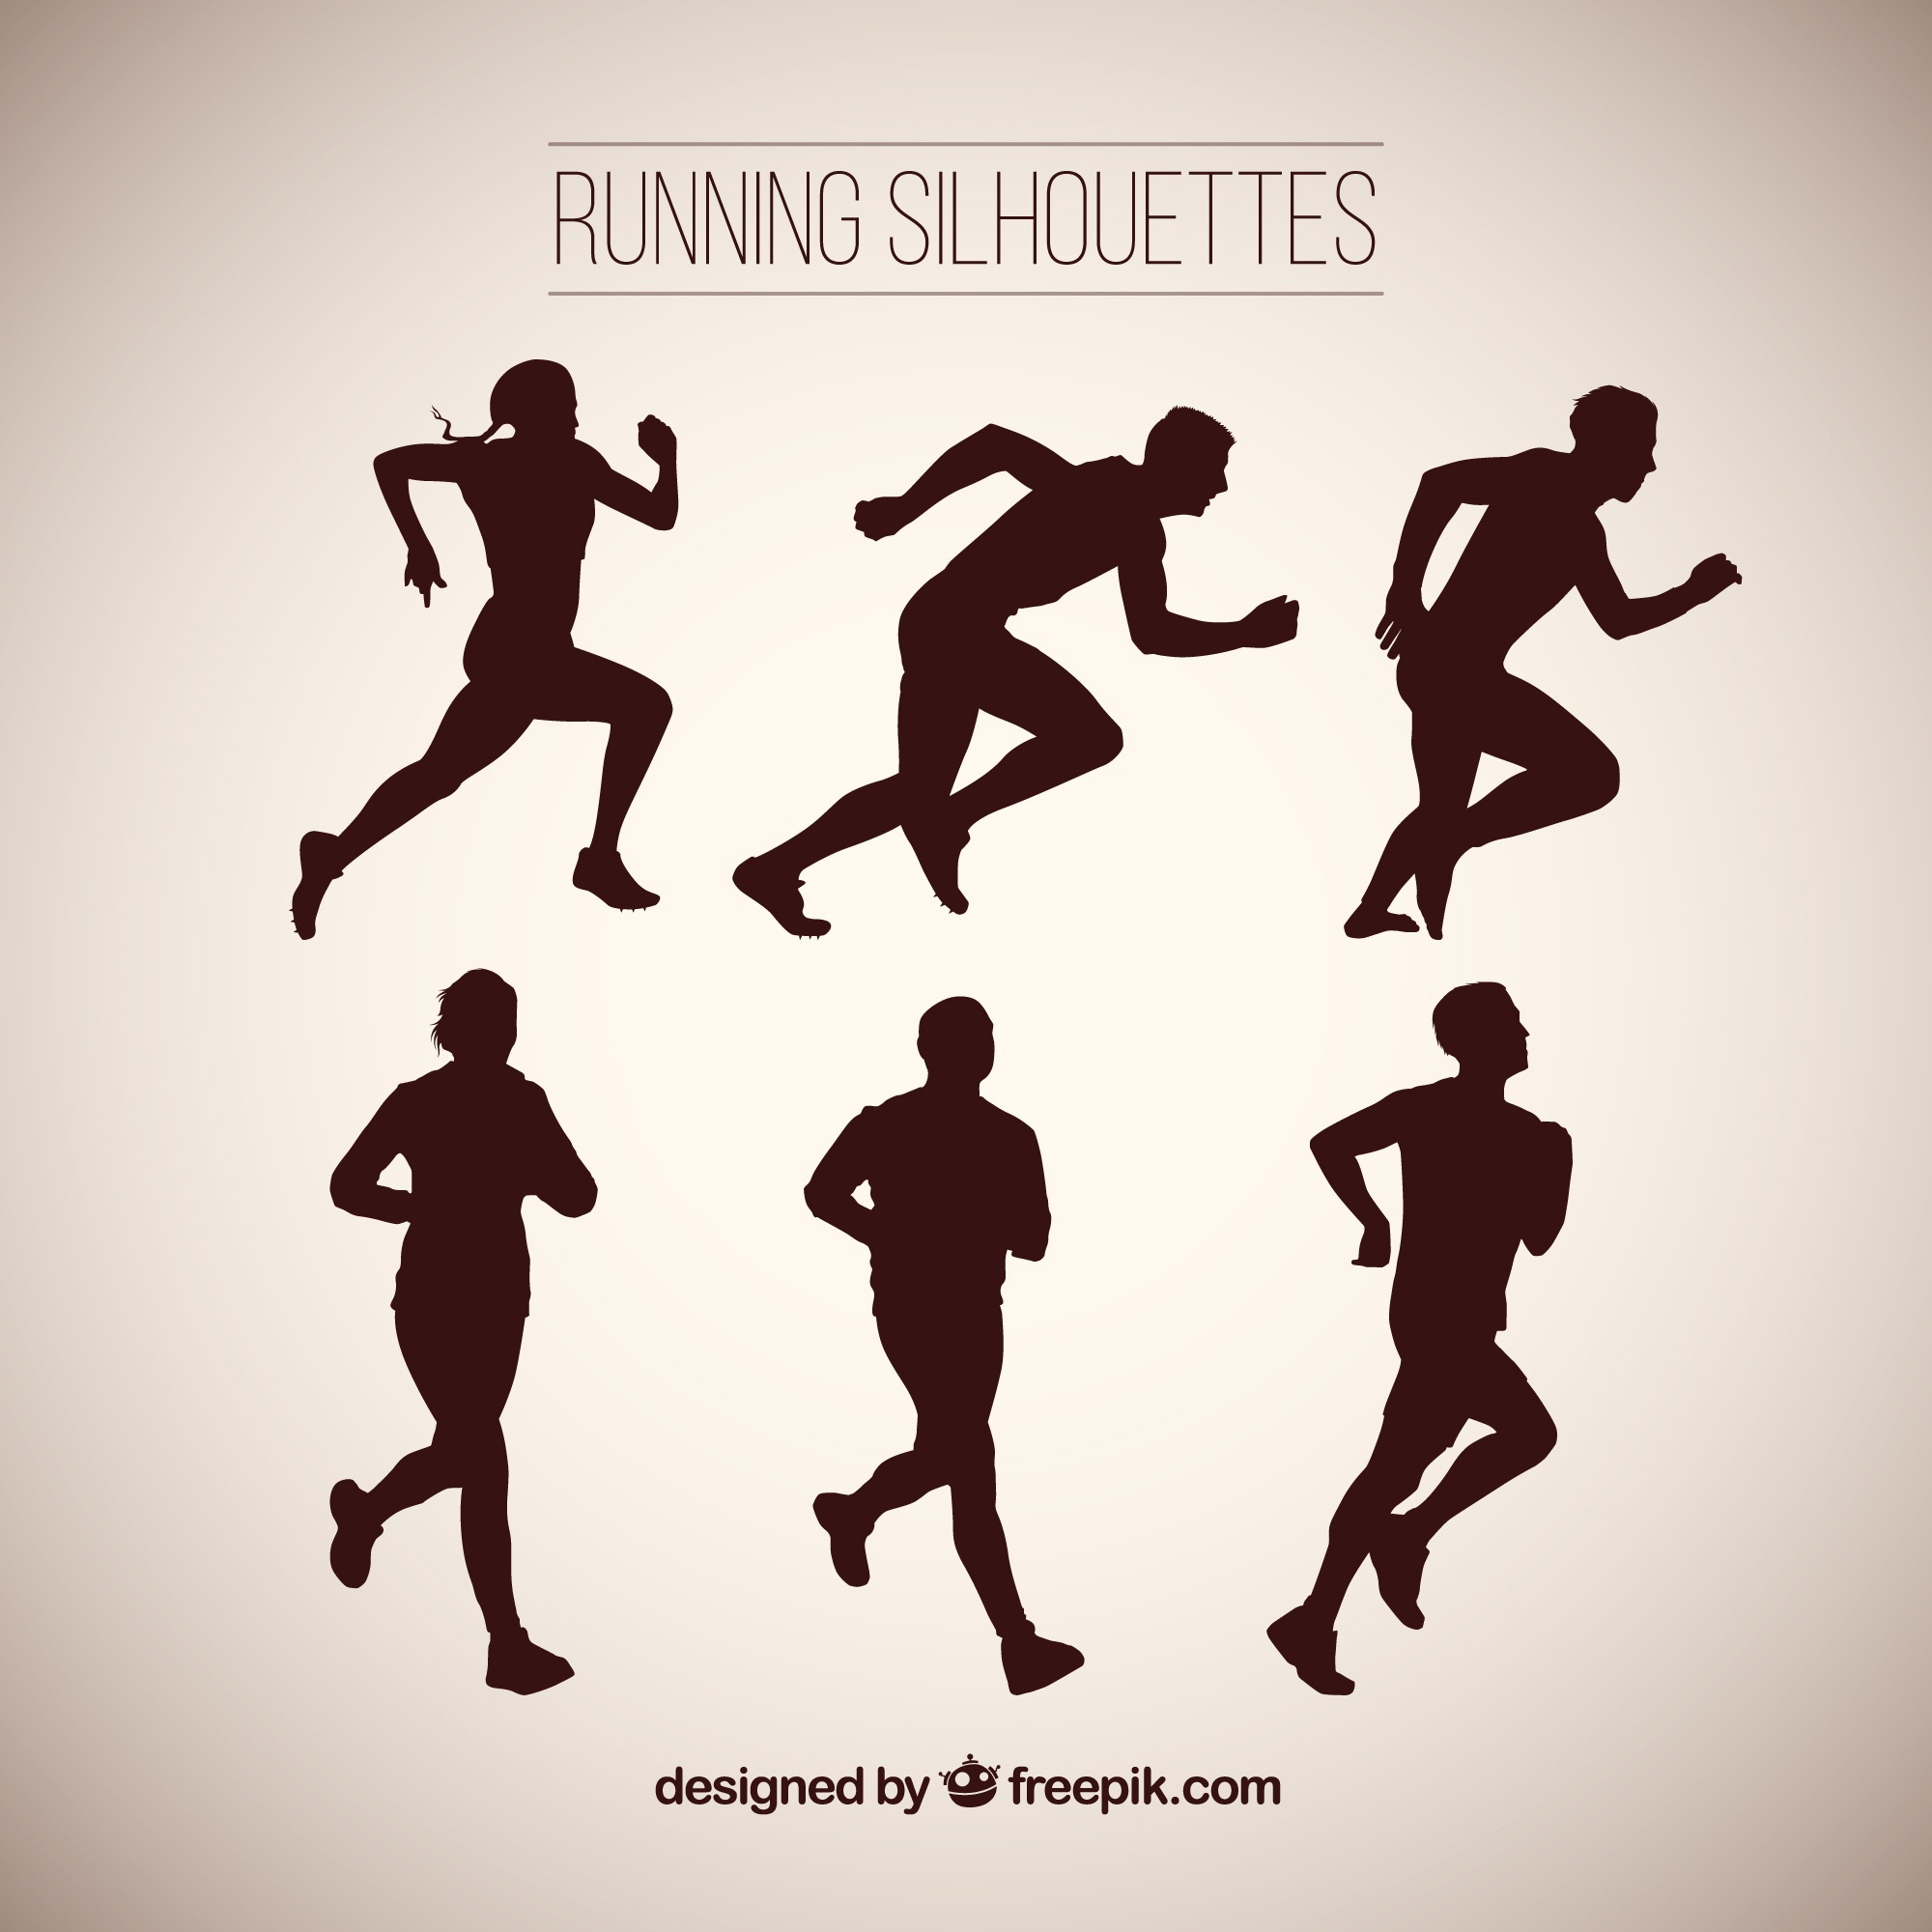 Great pack of silhouettes running